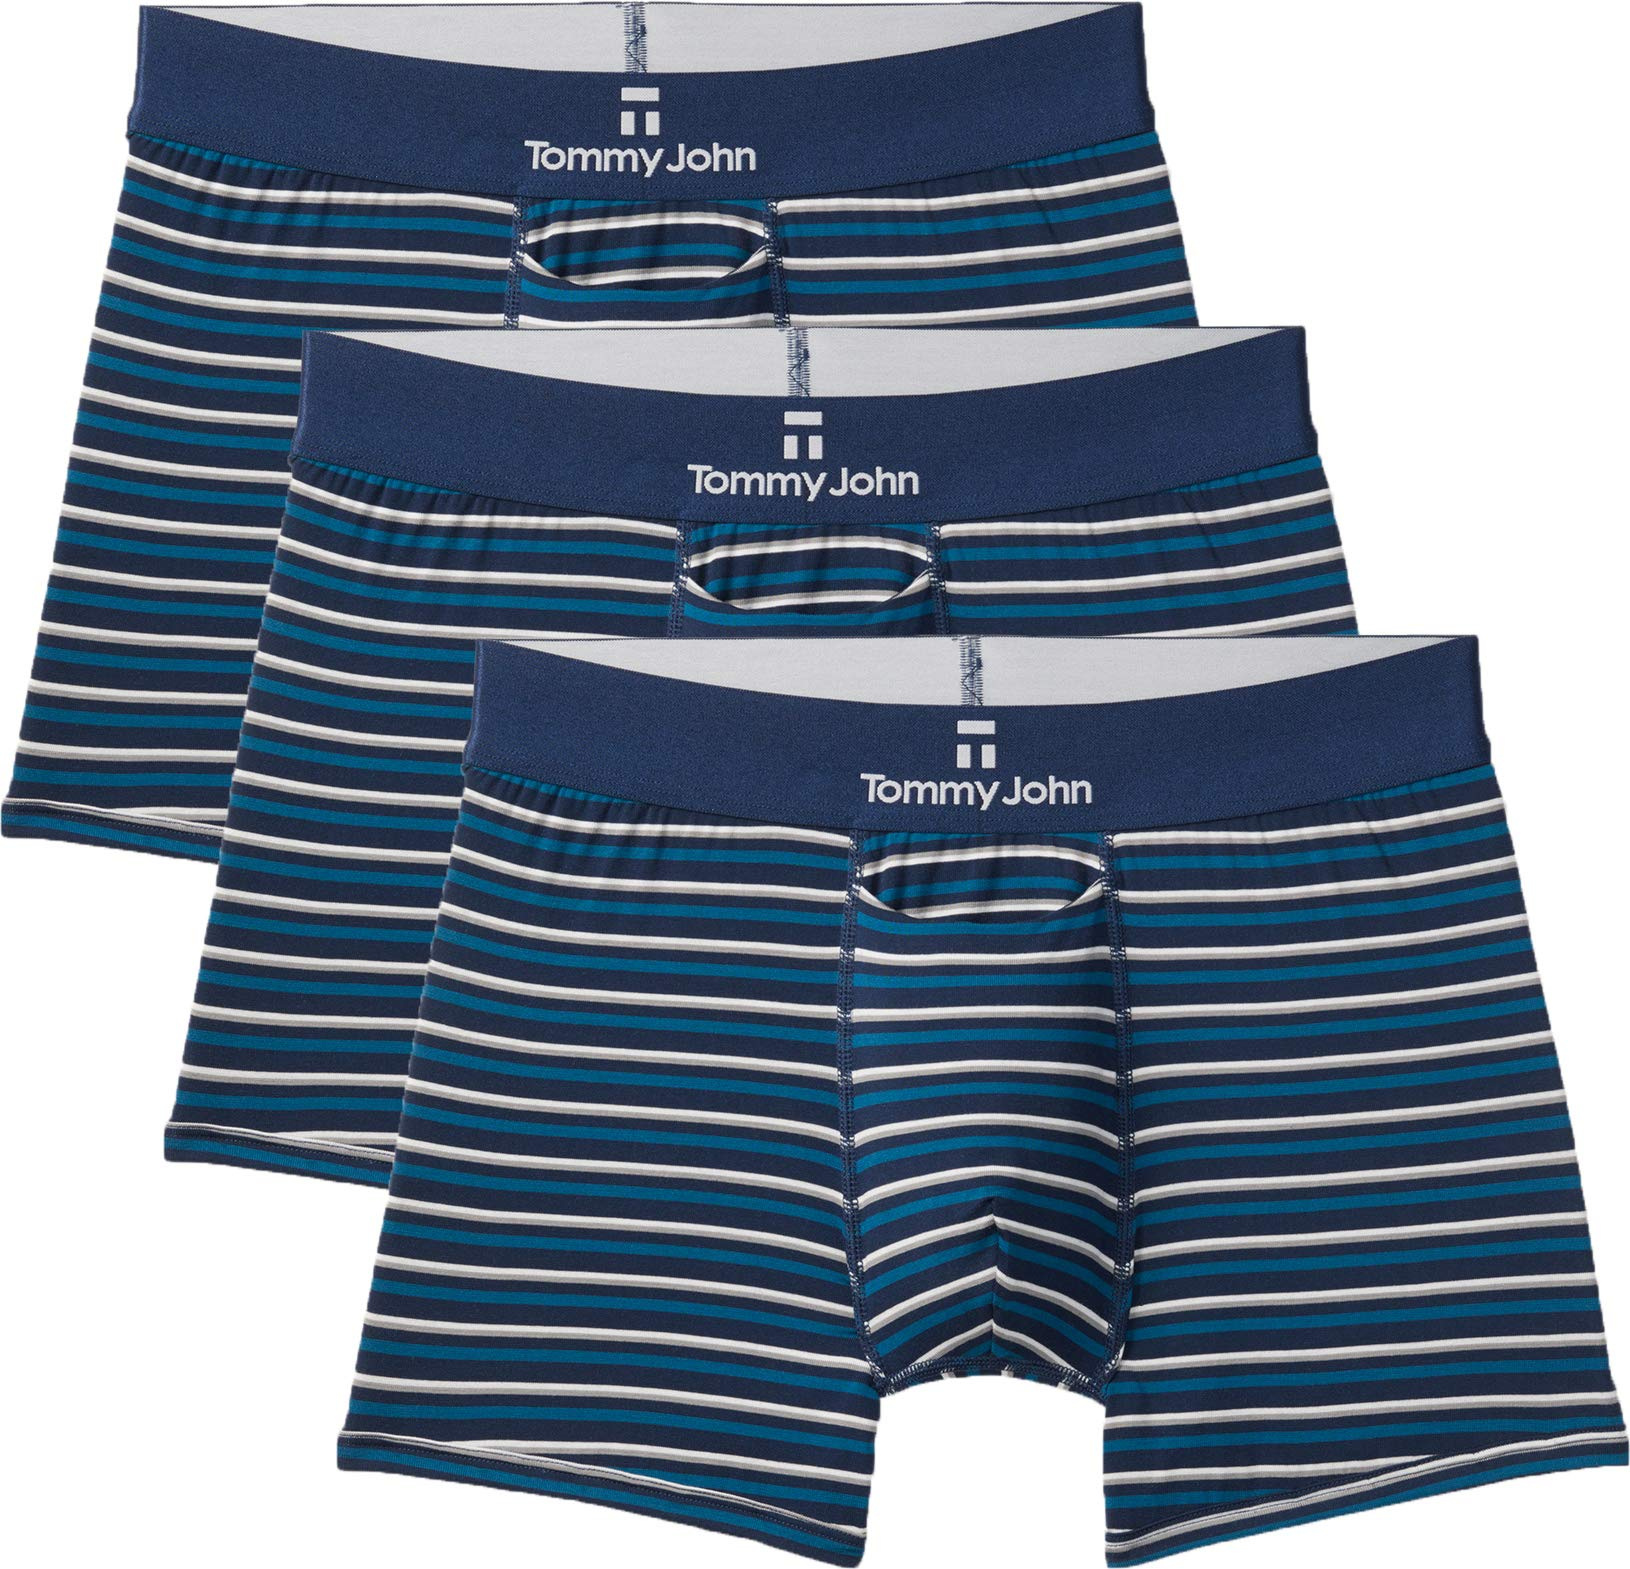 Tommy John Men's Second Skin Trunks - 3 Pack - Comfortable Breathable Soft Striped Underwear for Men (Ink Blue, Large) by Tommy John